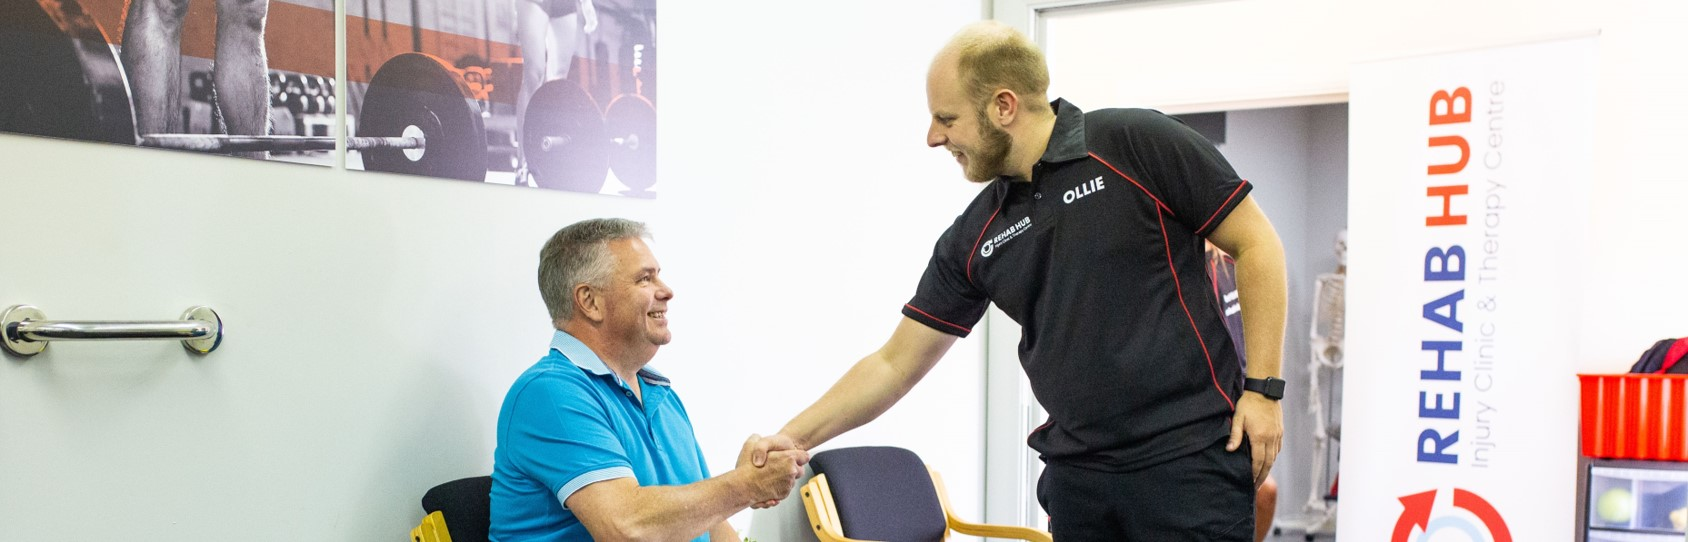 osteopath meets a new patient in clinic